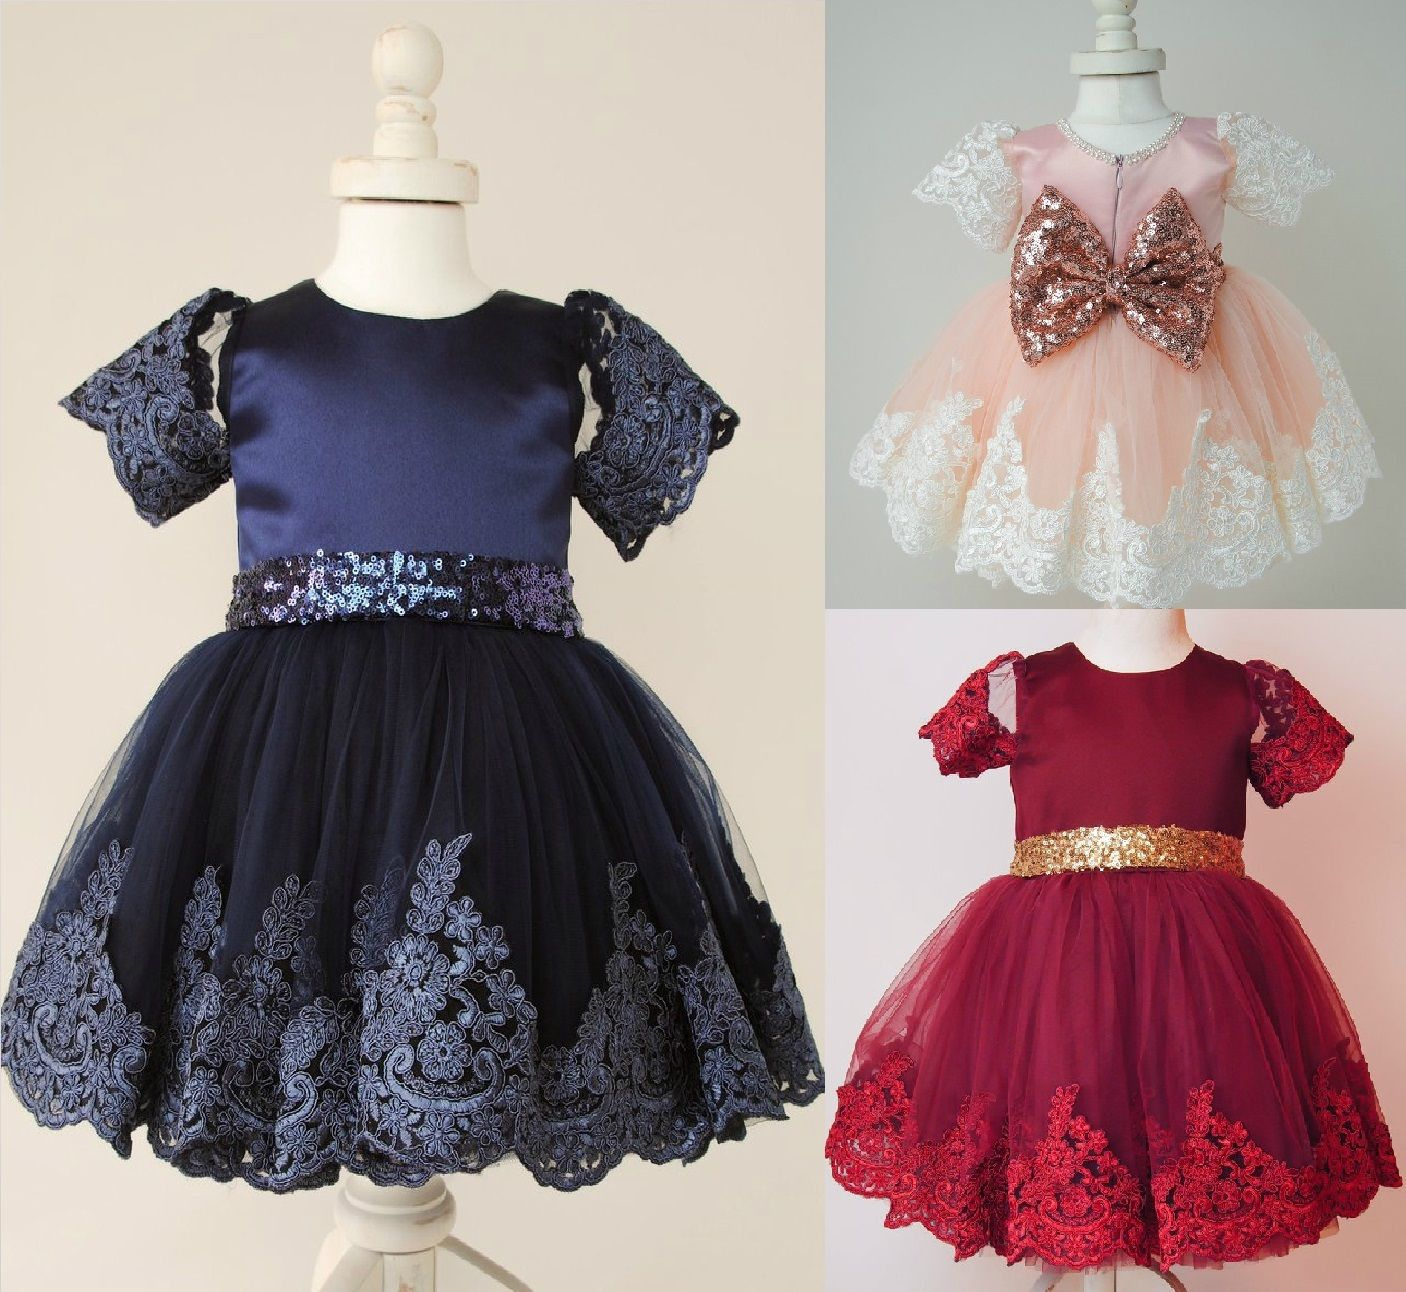 Flower Girls Clothing Dresses Princess Bow Toddler Baby Lace Ball Gown Party Pageant Tutu Formal Dresses Girl Платье